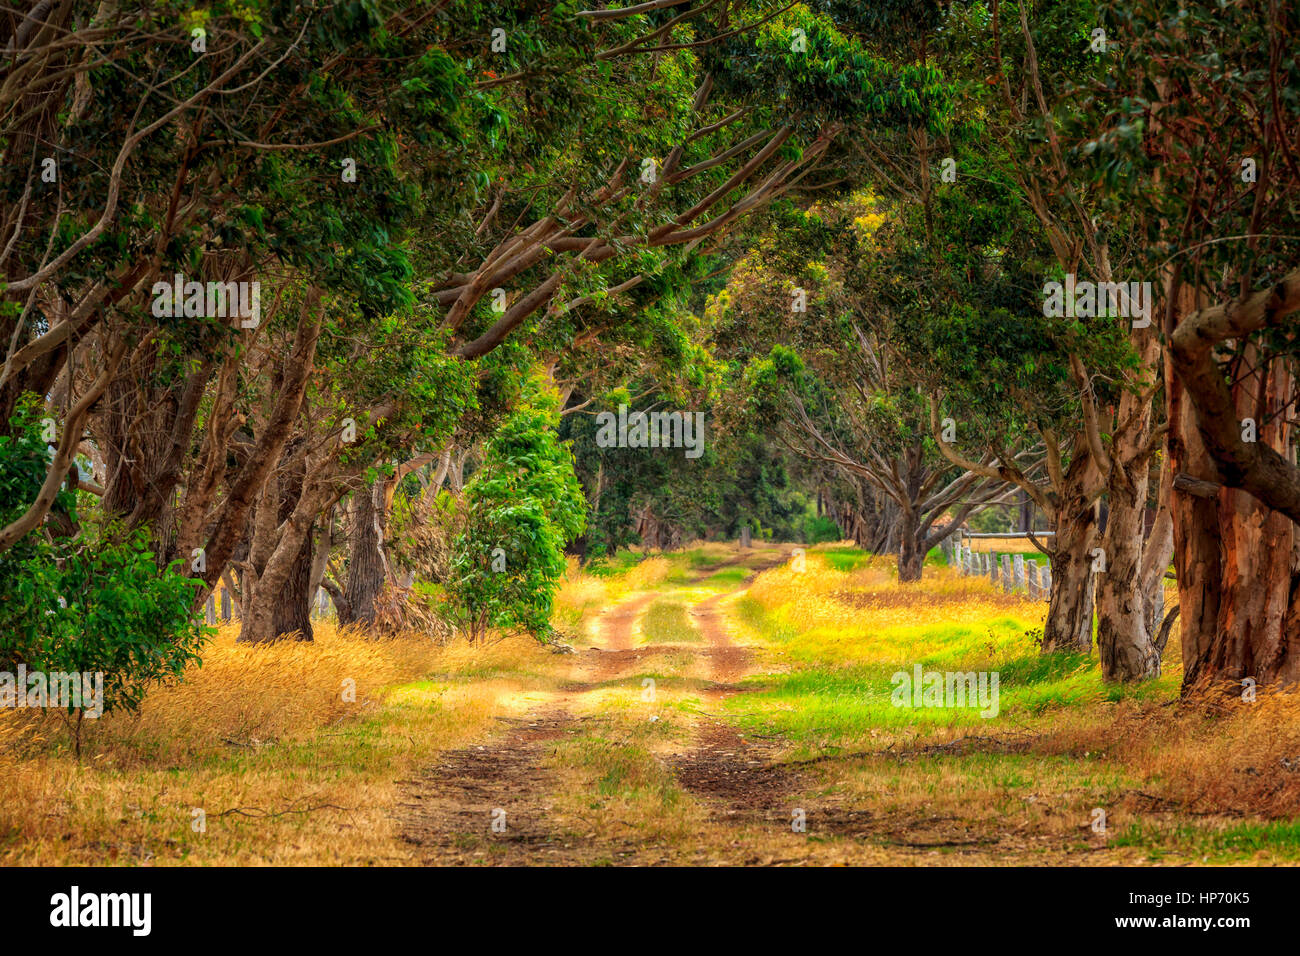 Rural Farm Road In Southwest Western Australia - Stock Image